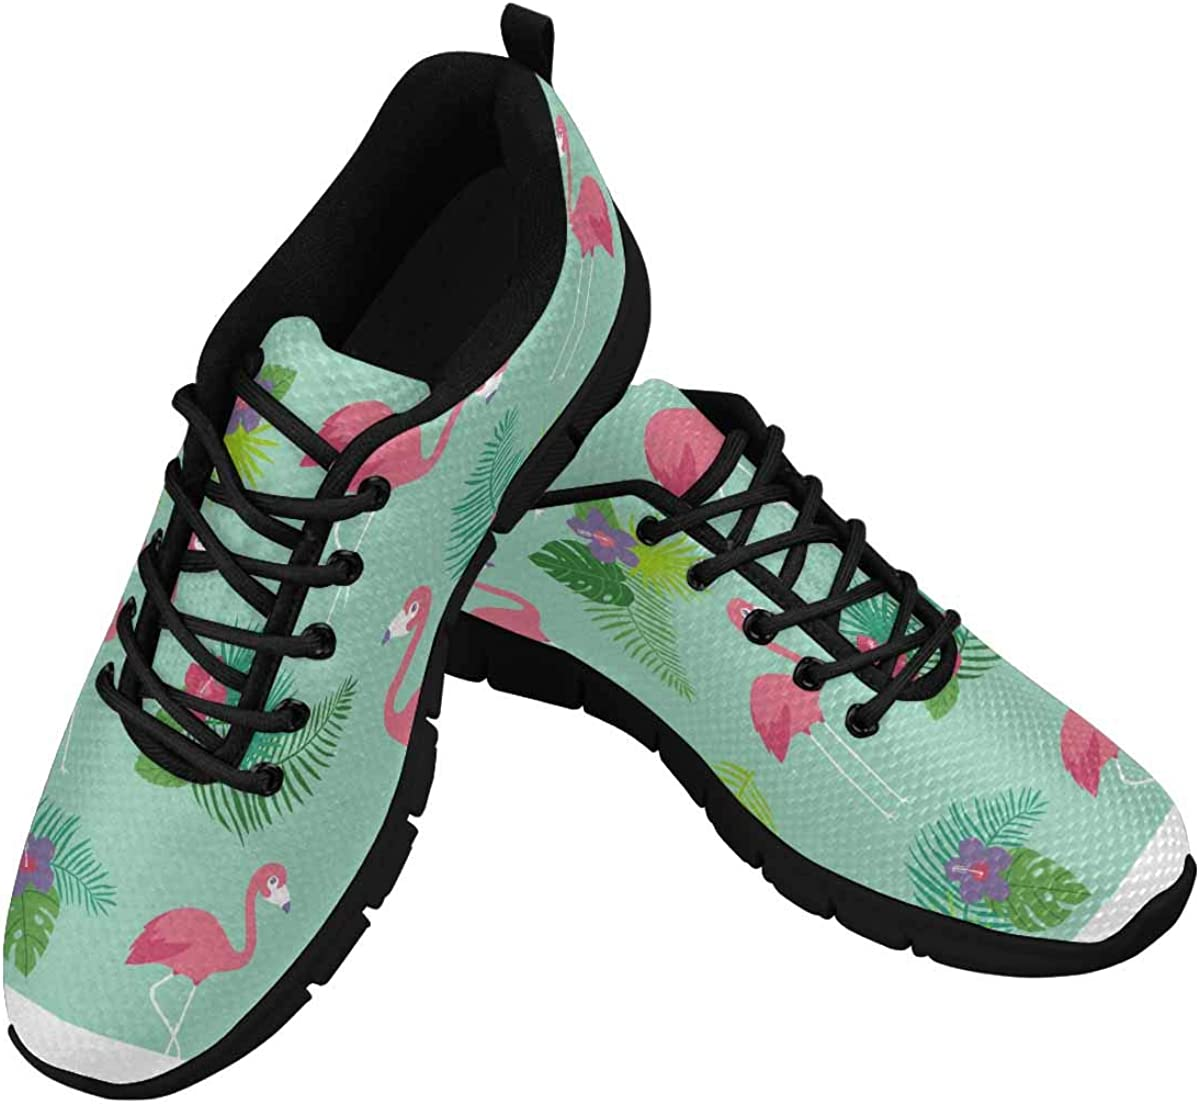 INTERESTPRINT Flamingos with Hibiscus and Leaves Women's Lace Up Running Comfort Sports Sneakers